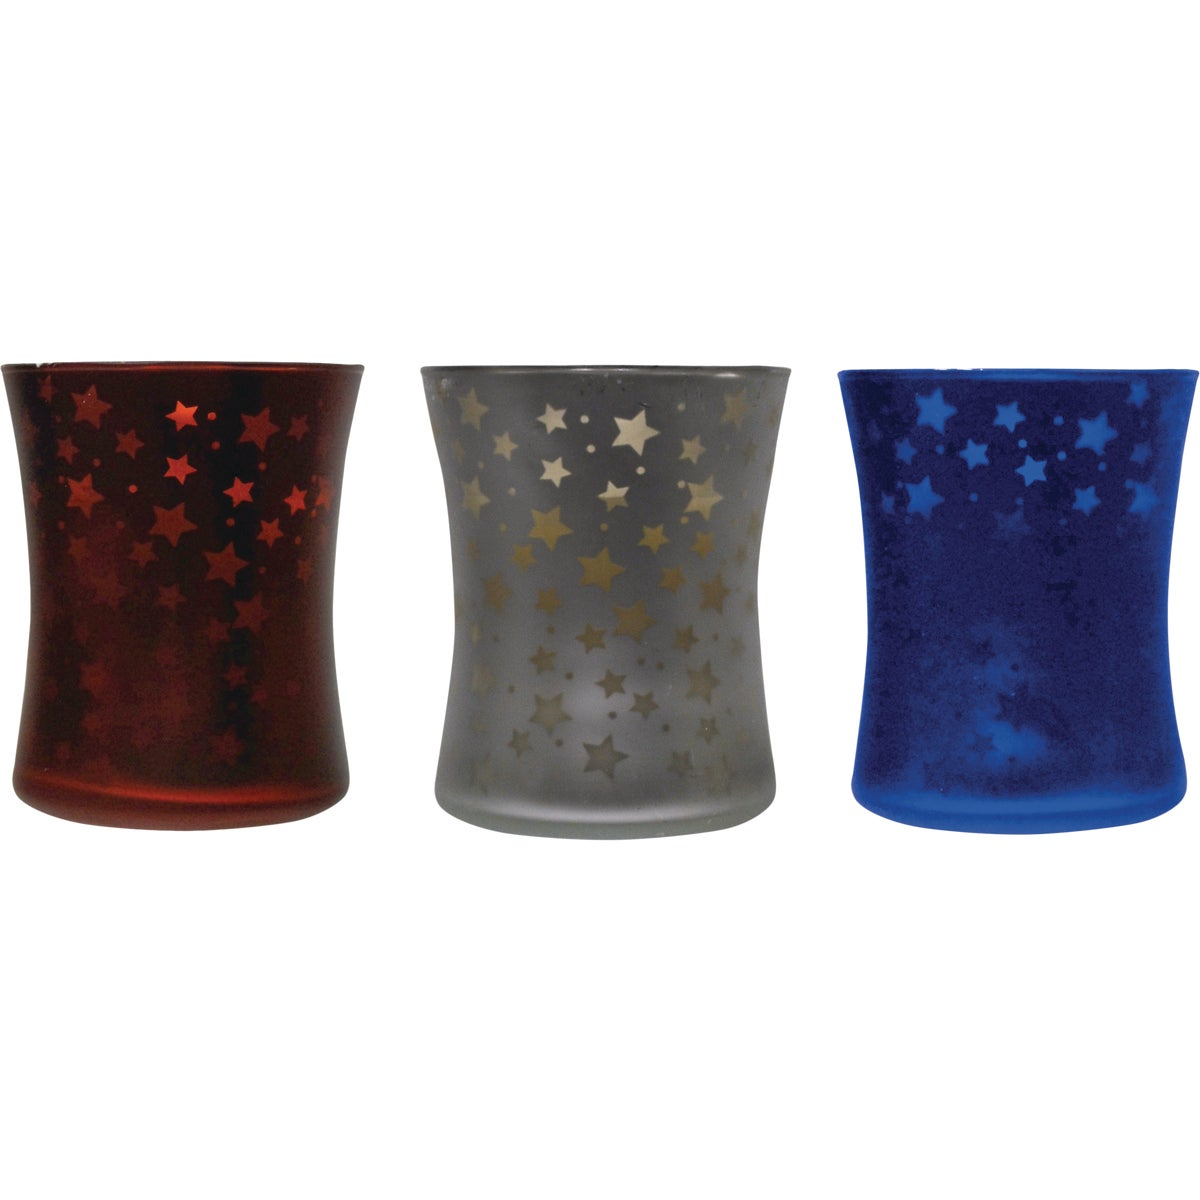 CITRO HURRICANE CANDLE - 1413047 by Lamplight Farms